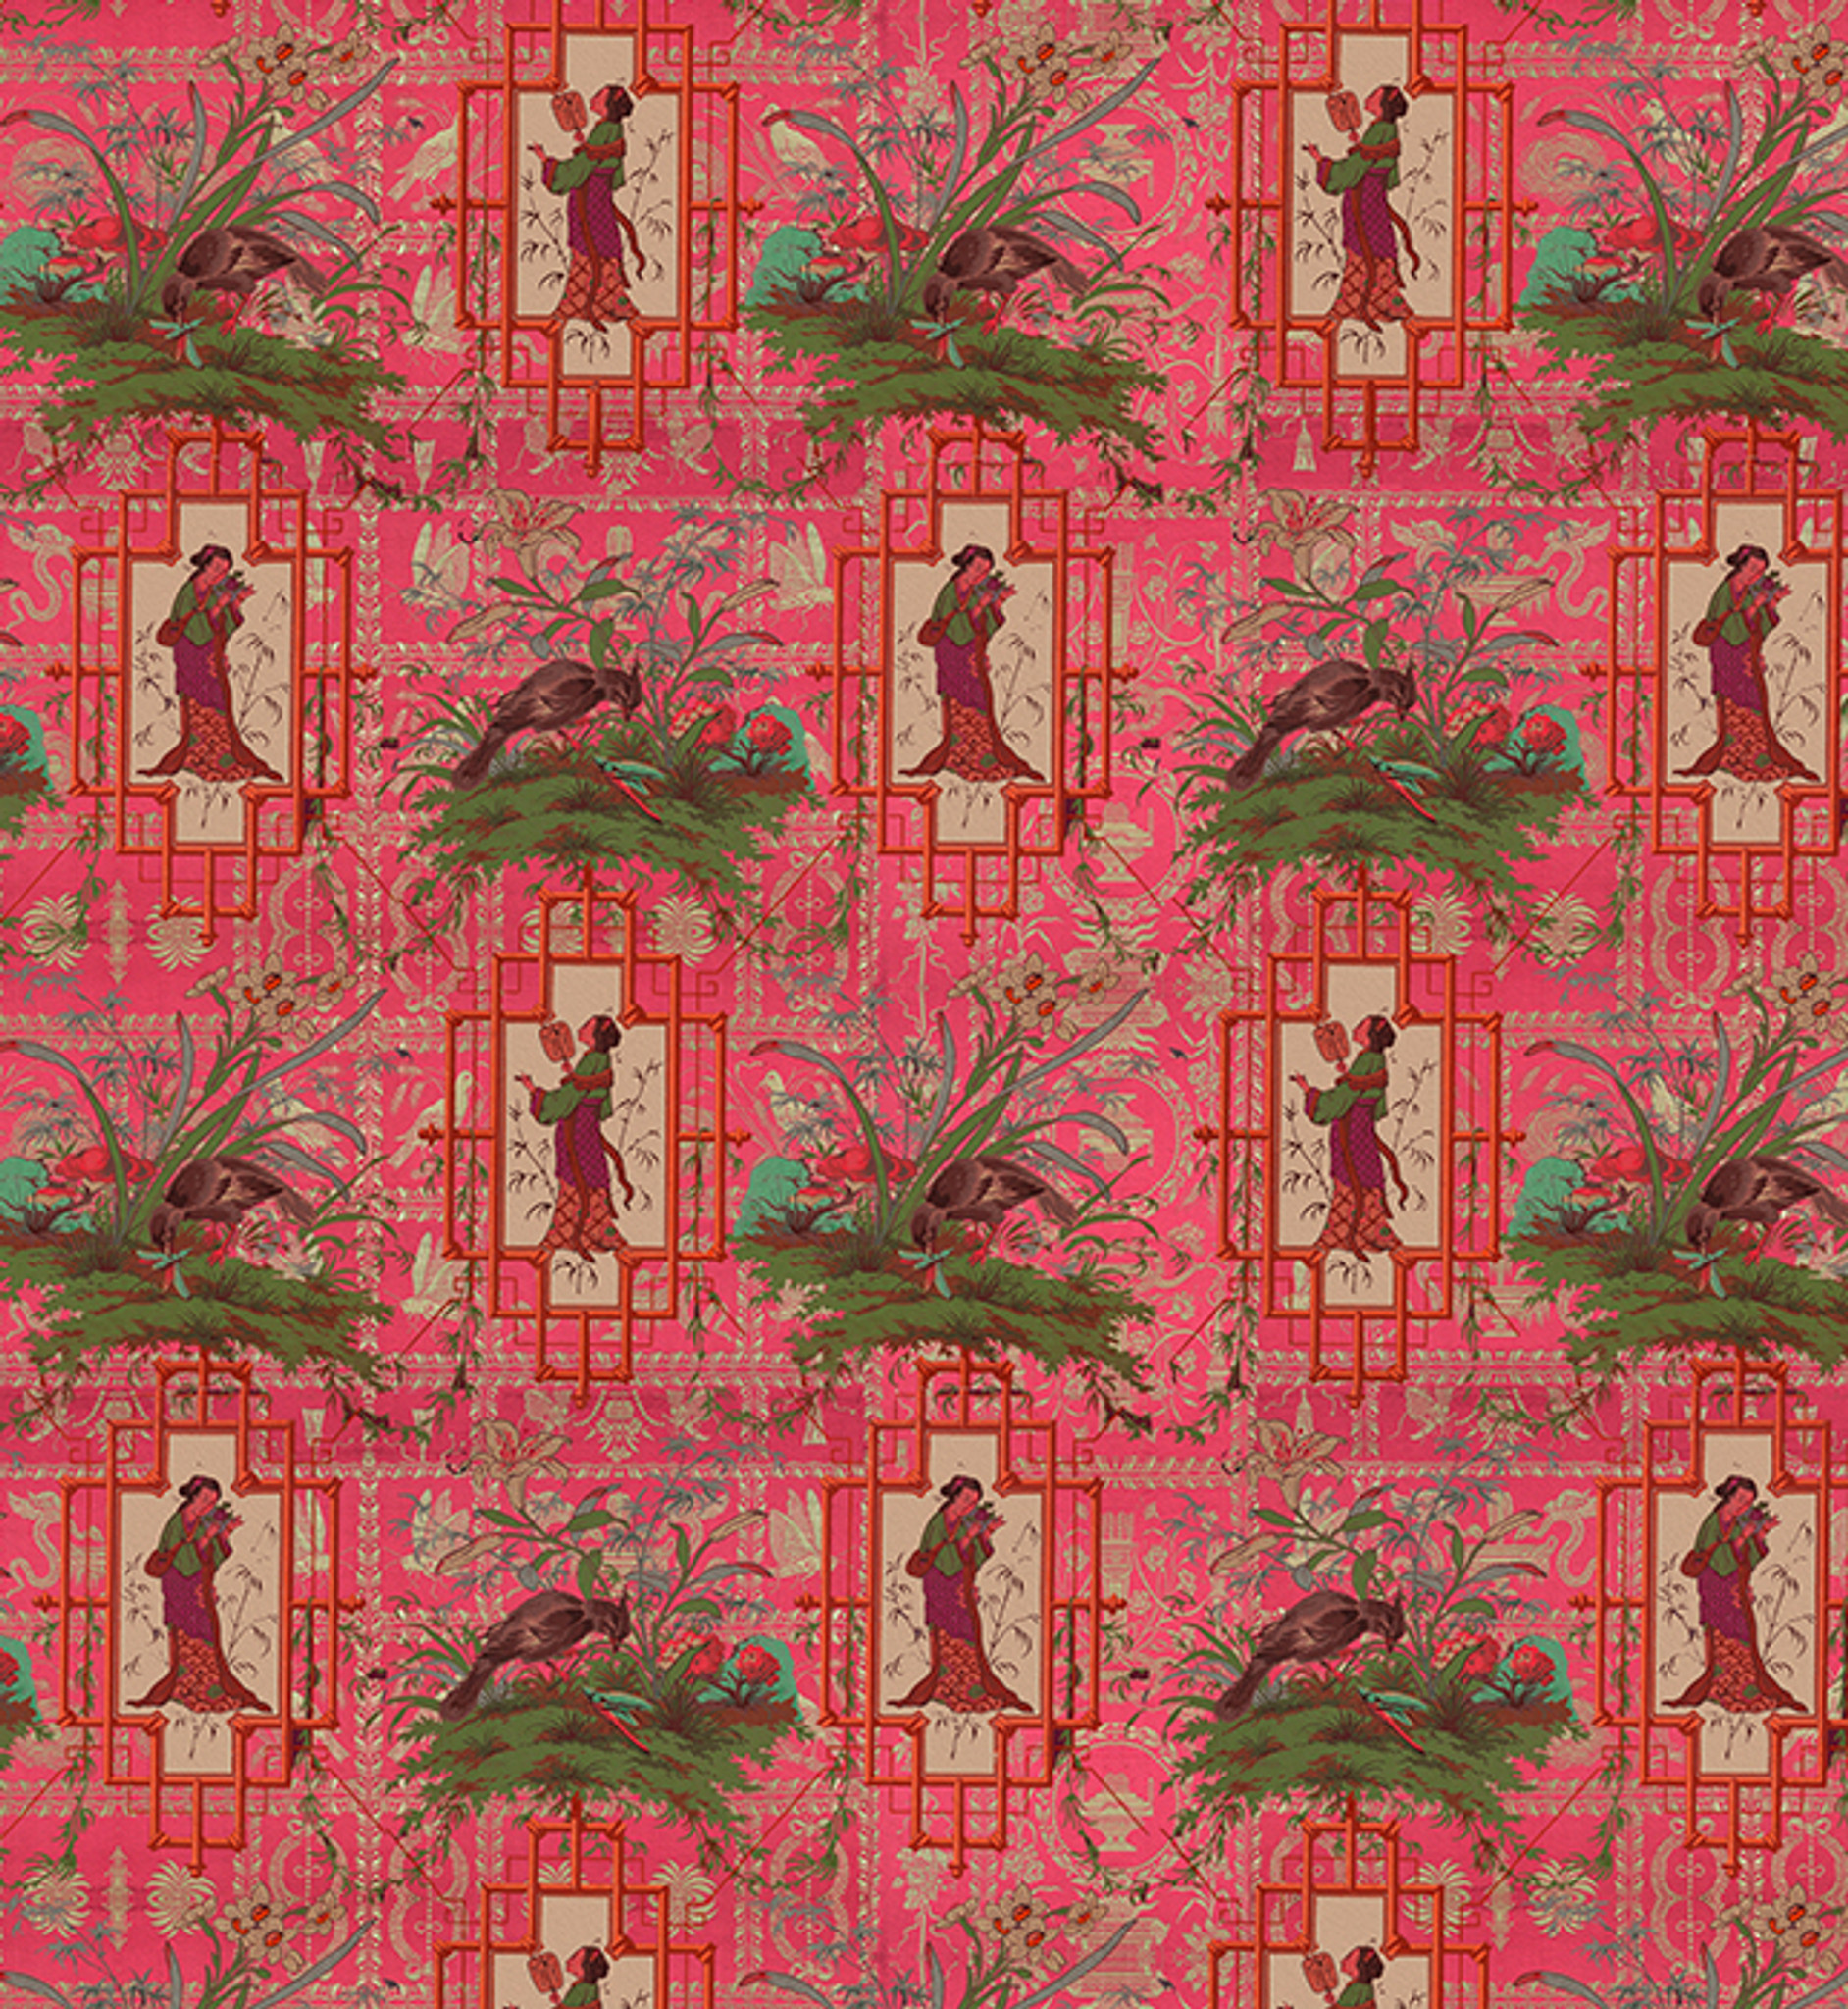 Wallpaper - Chinoiserie - Hot Pink